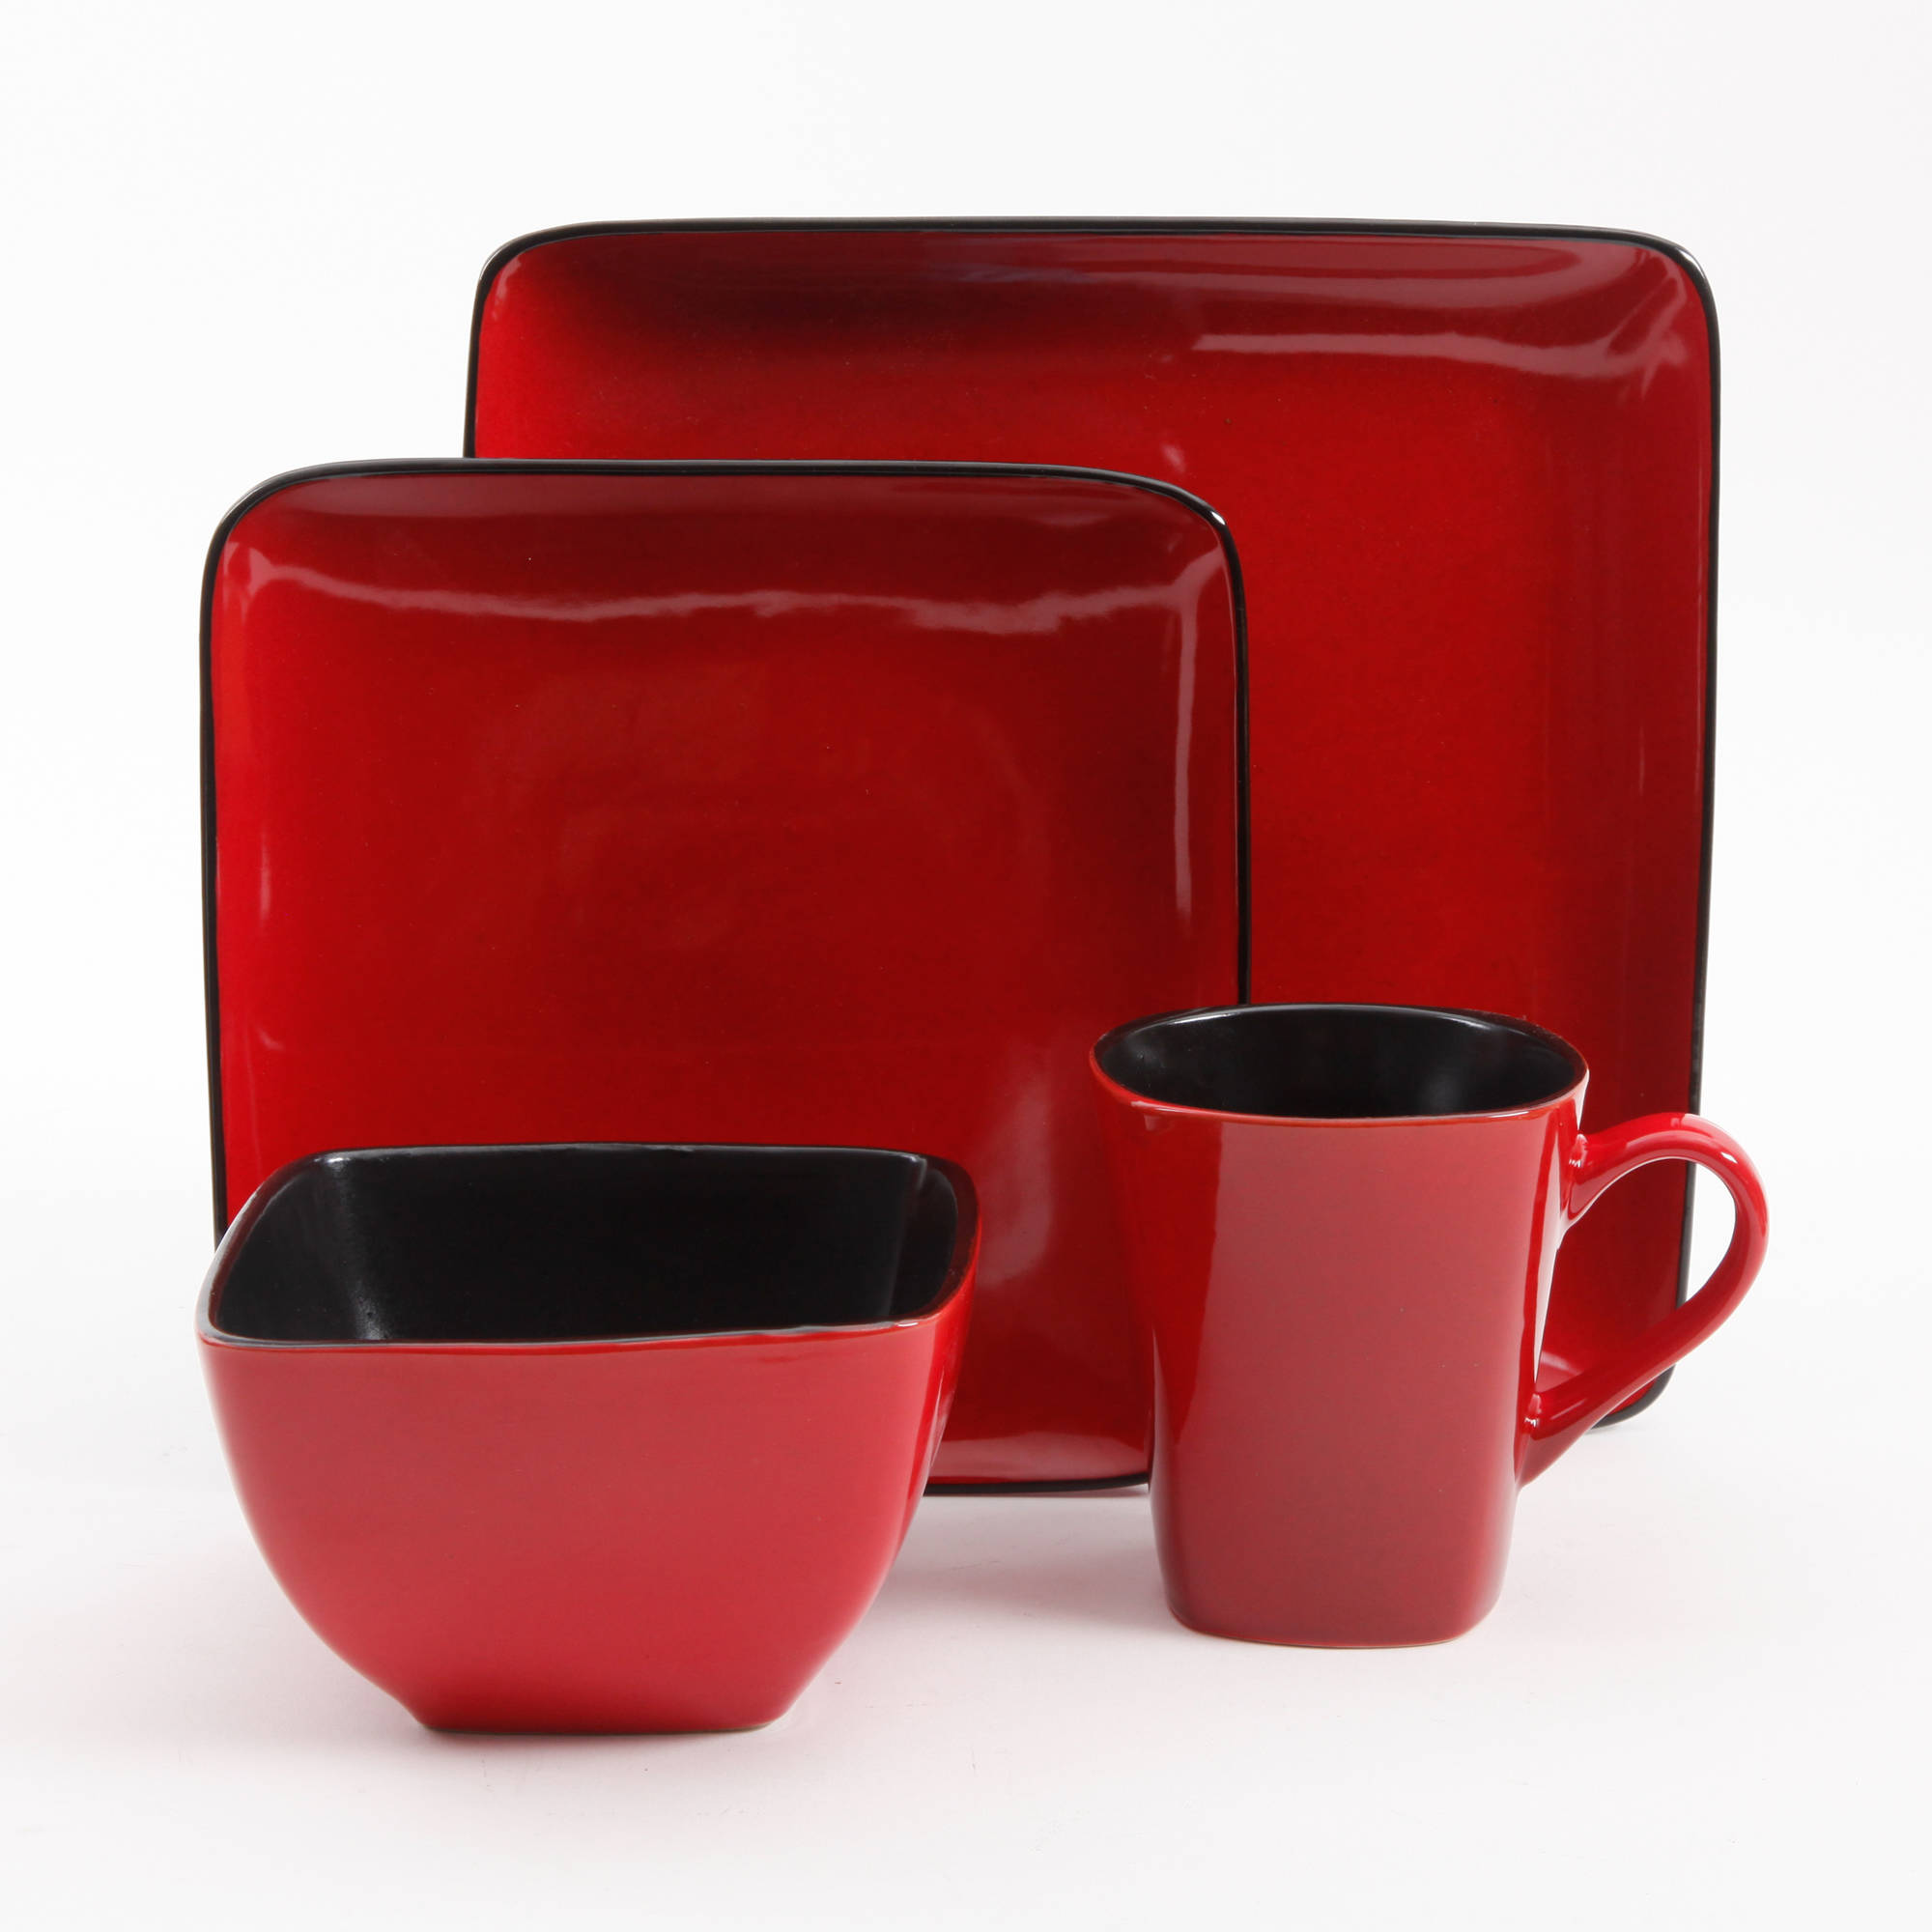 Better Homes & Gardens Rave Square Dinnerware, Red, Set Of 16 - Walmart.com